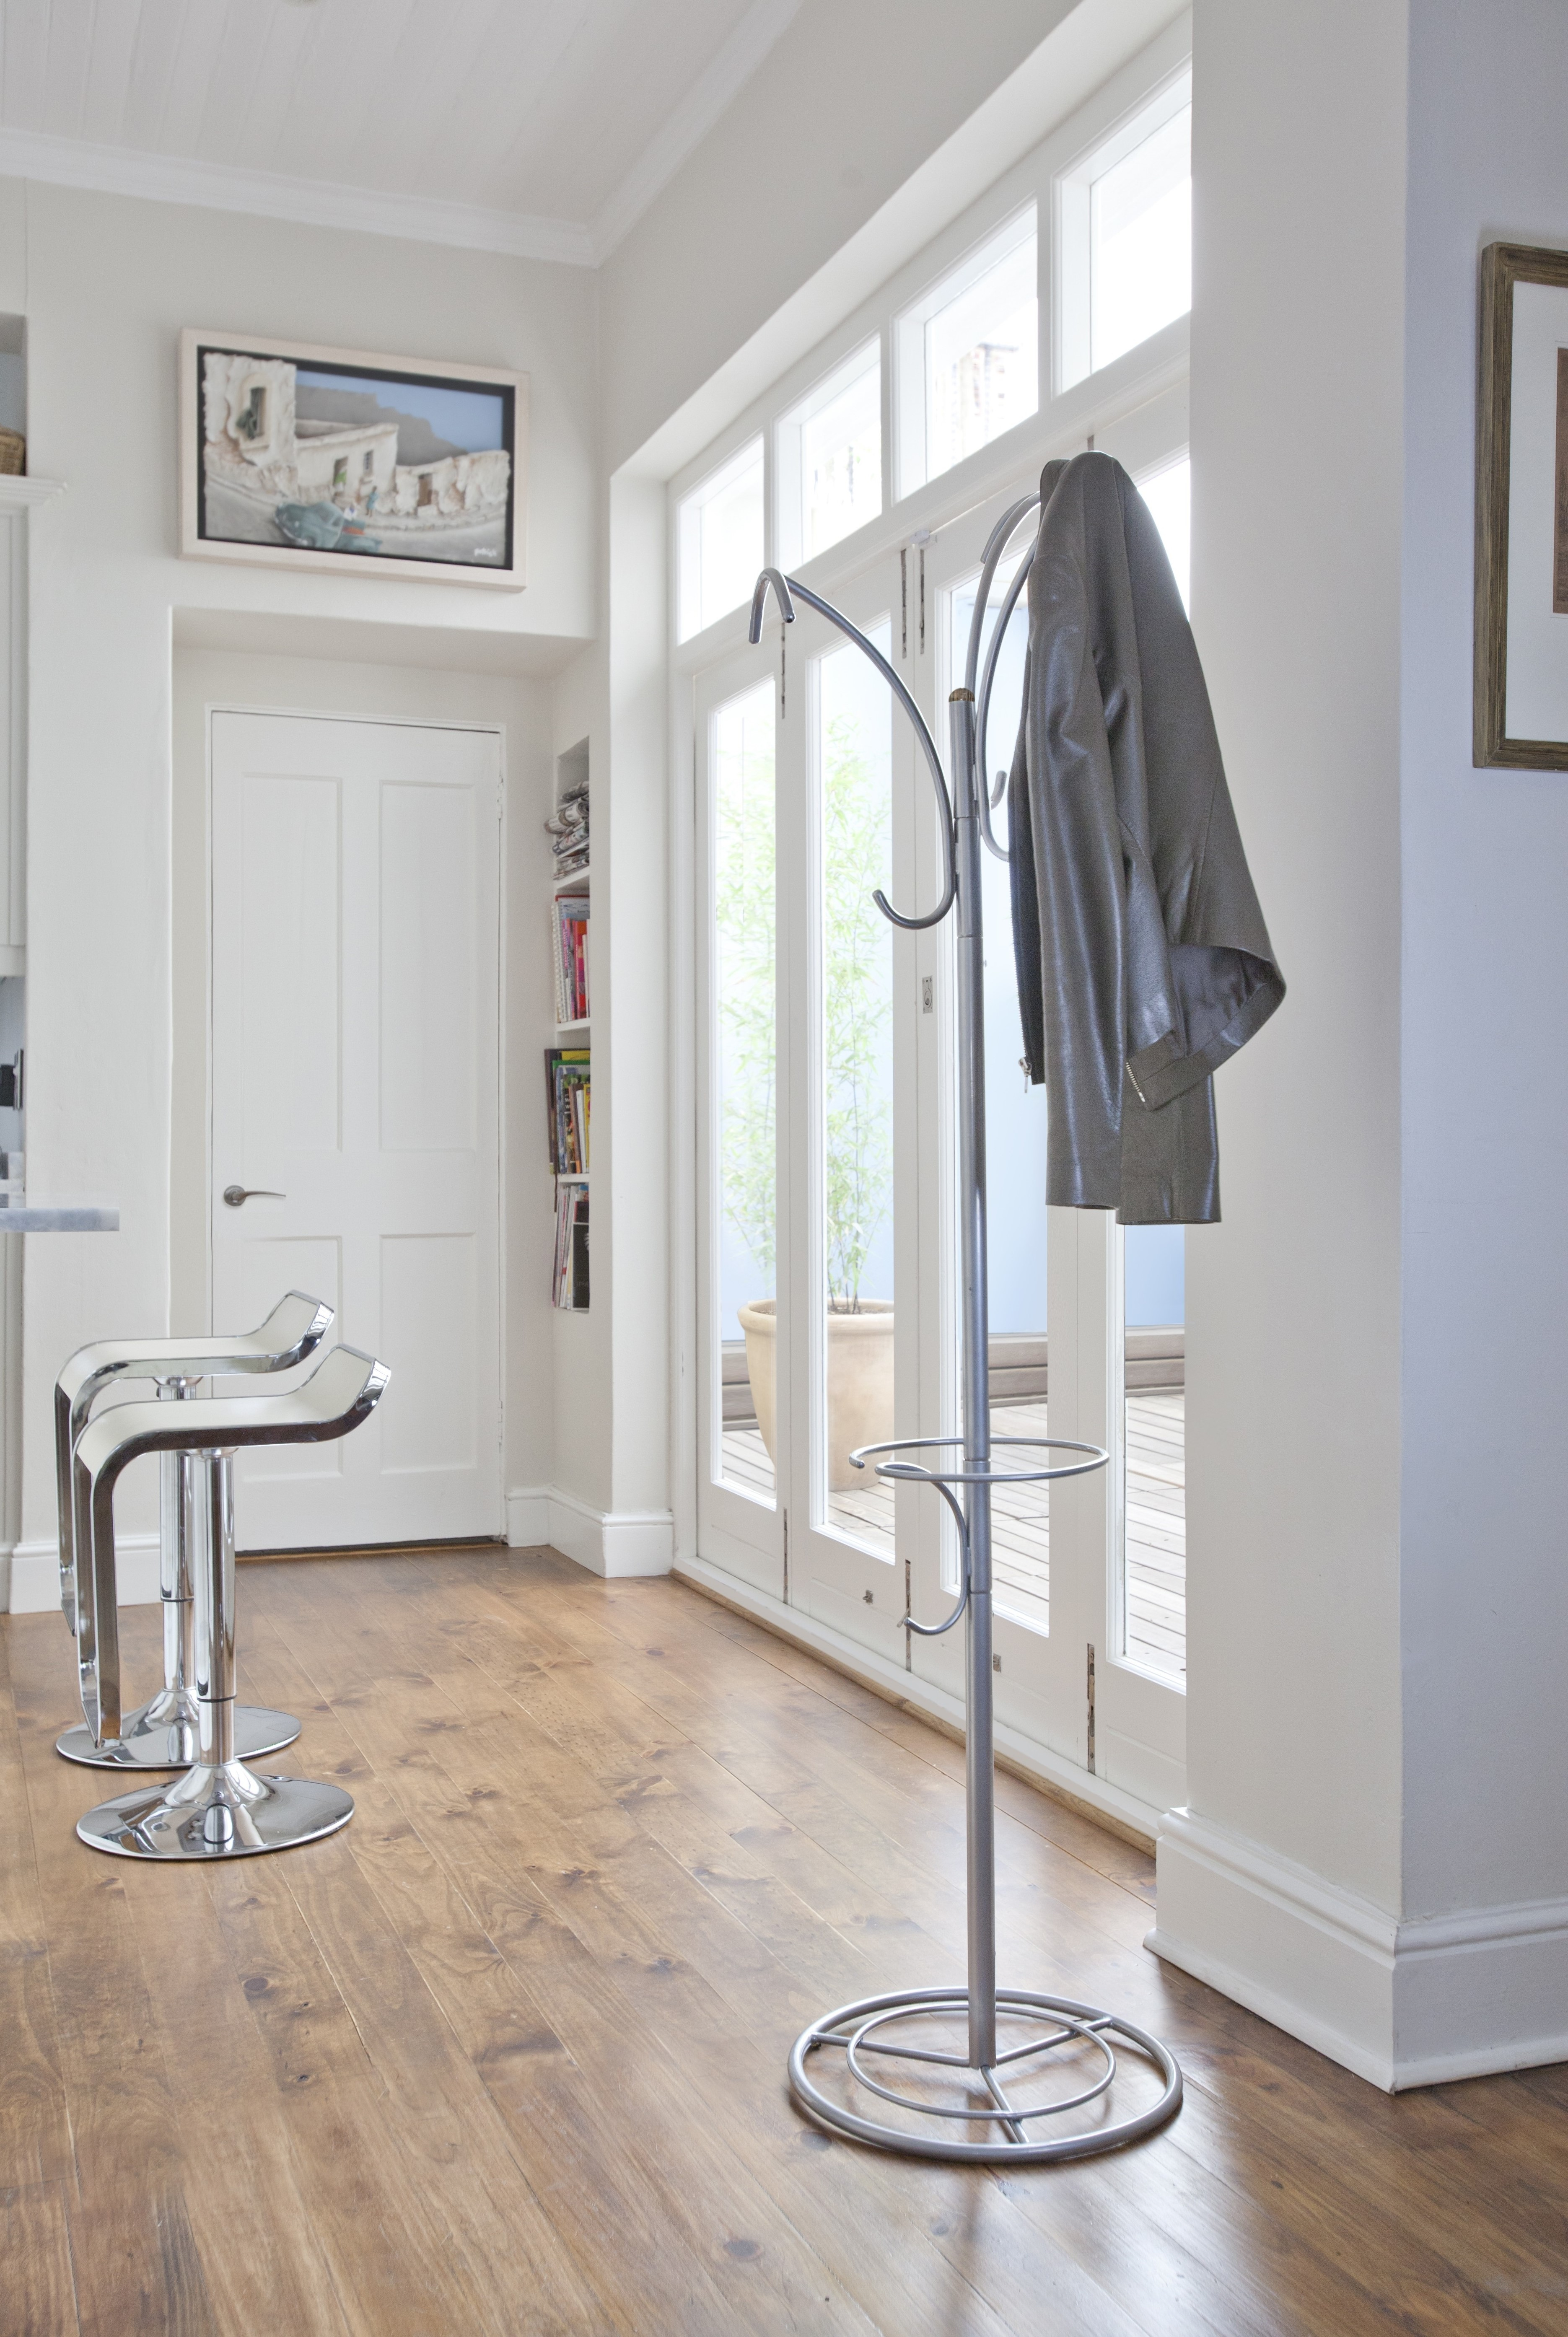 This modern style coat rack features 3 loops and 3 hooks at varying heights.